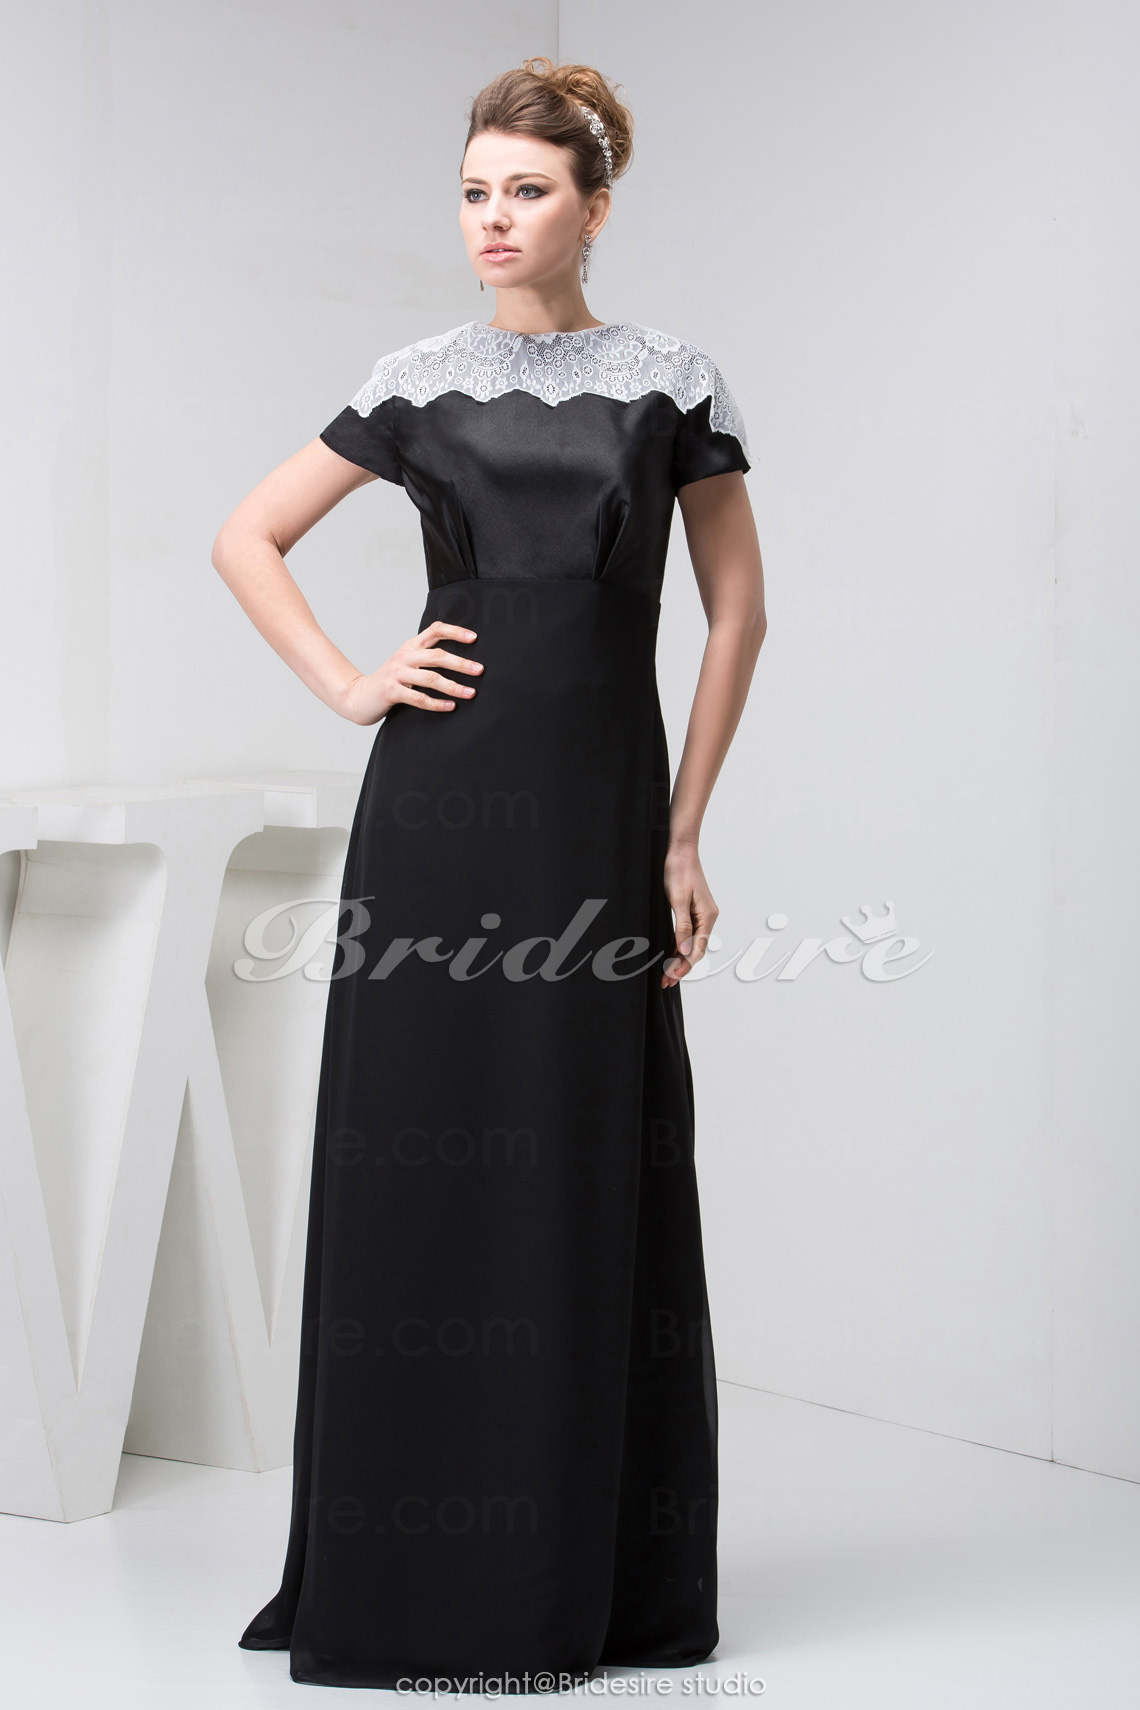 A-line Scoop Floor-length Short Sleeve Satin Organza Dress